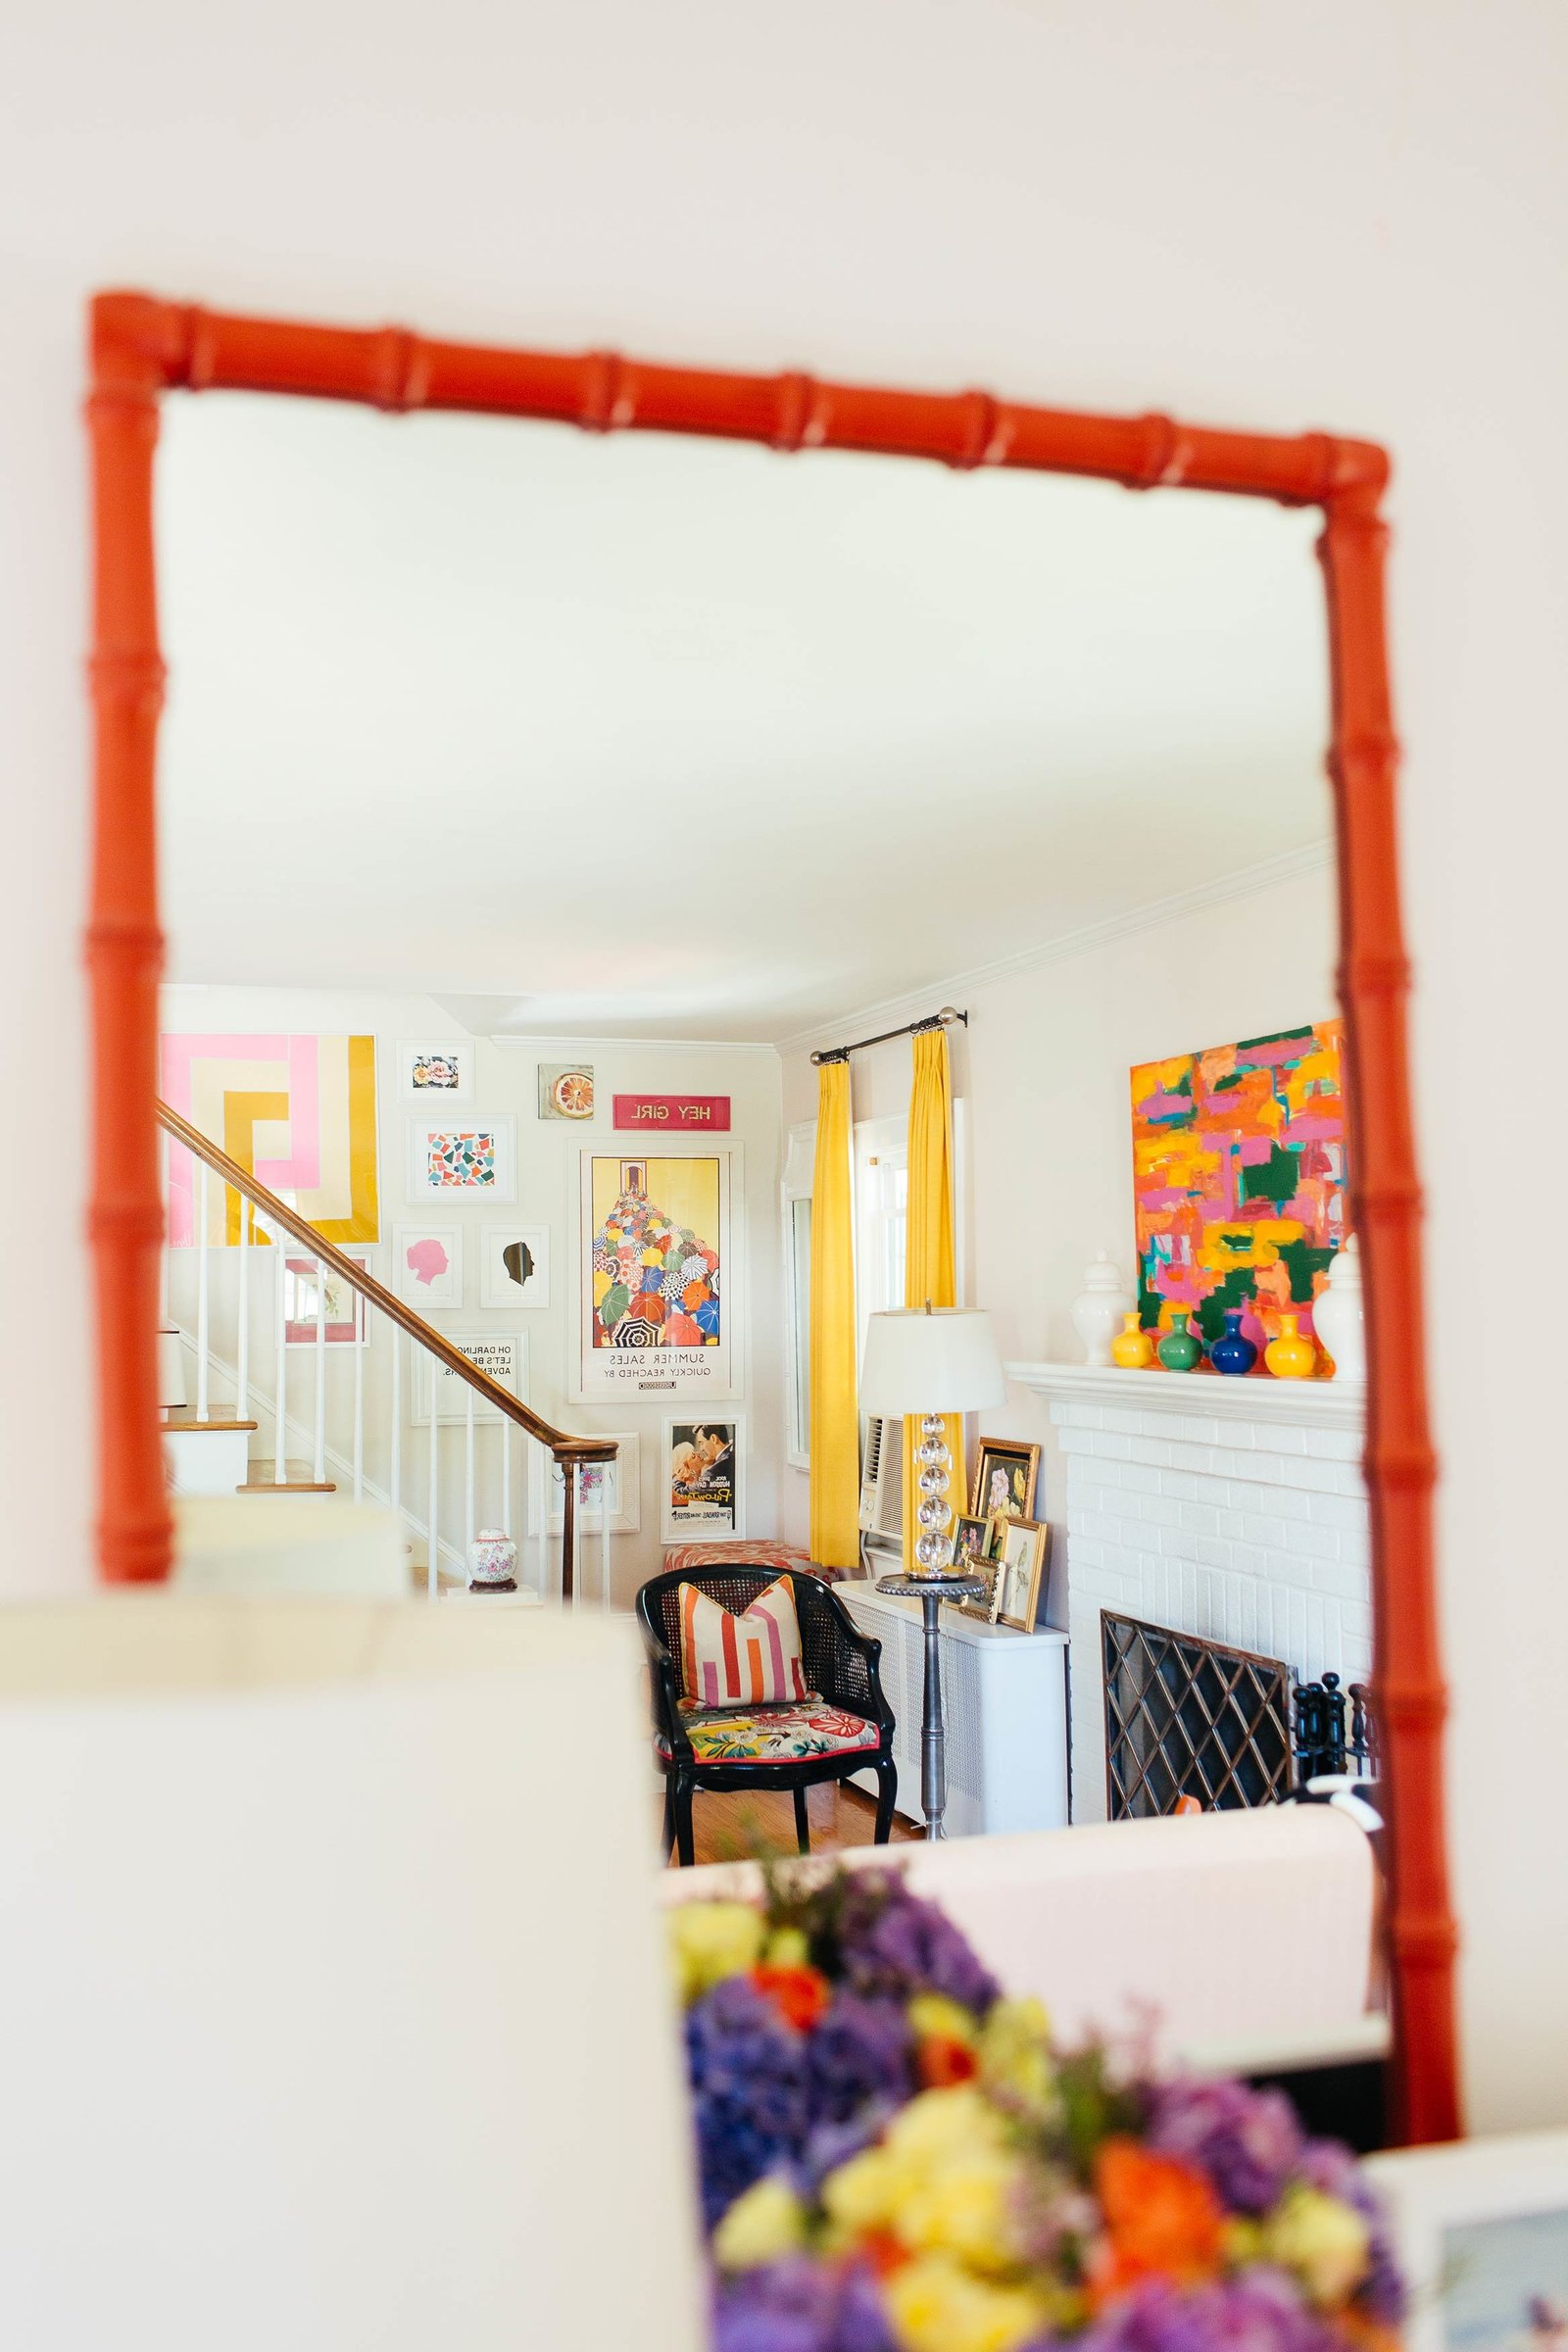 A dark orange framed mirror reflecting a colorful living room.